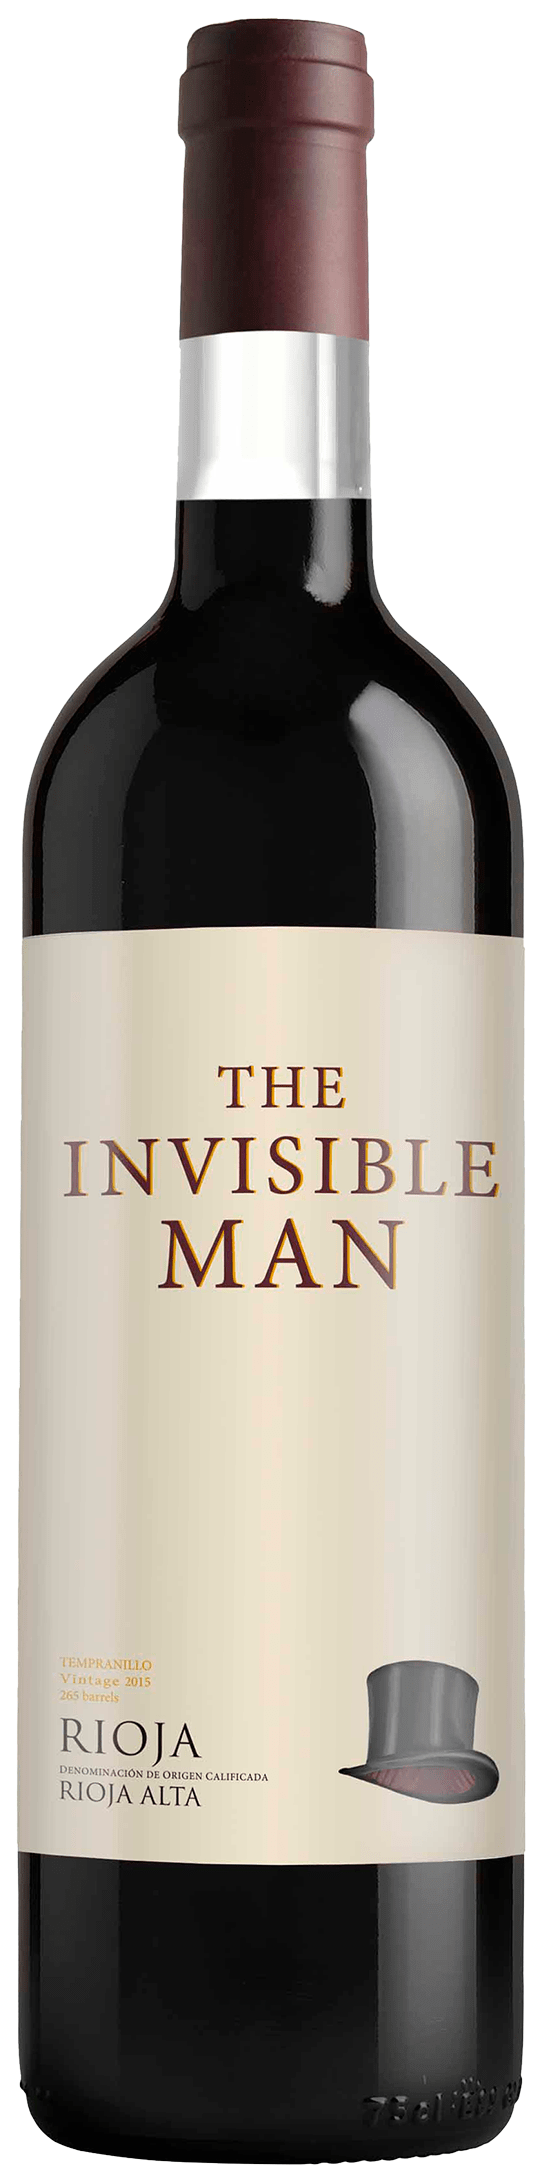 Casa Rojo, The Invisible Man, 2015 (5 Btls Gift Set)